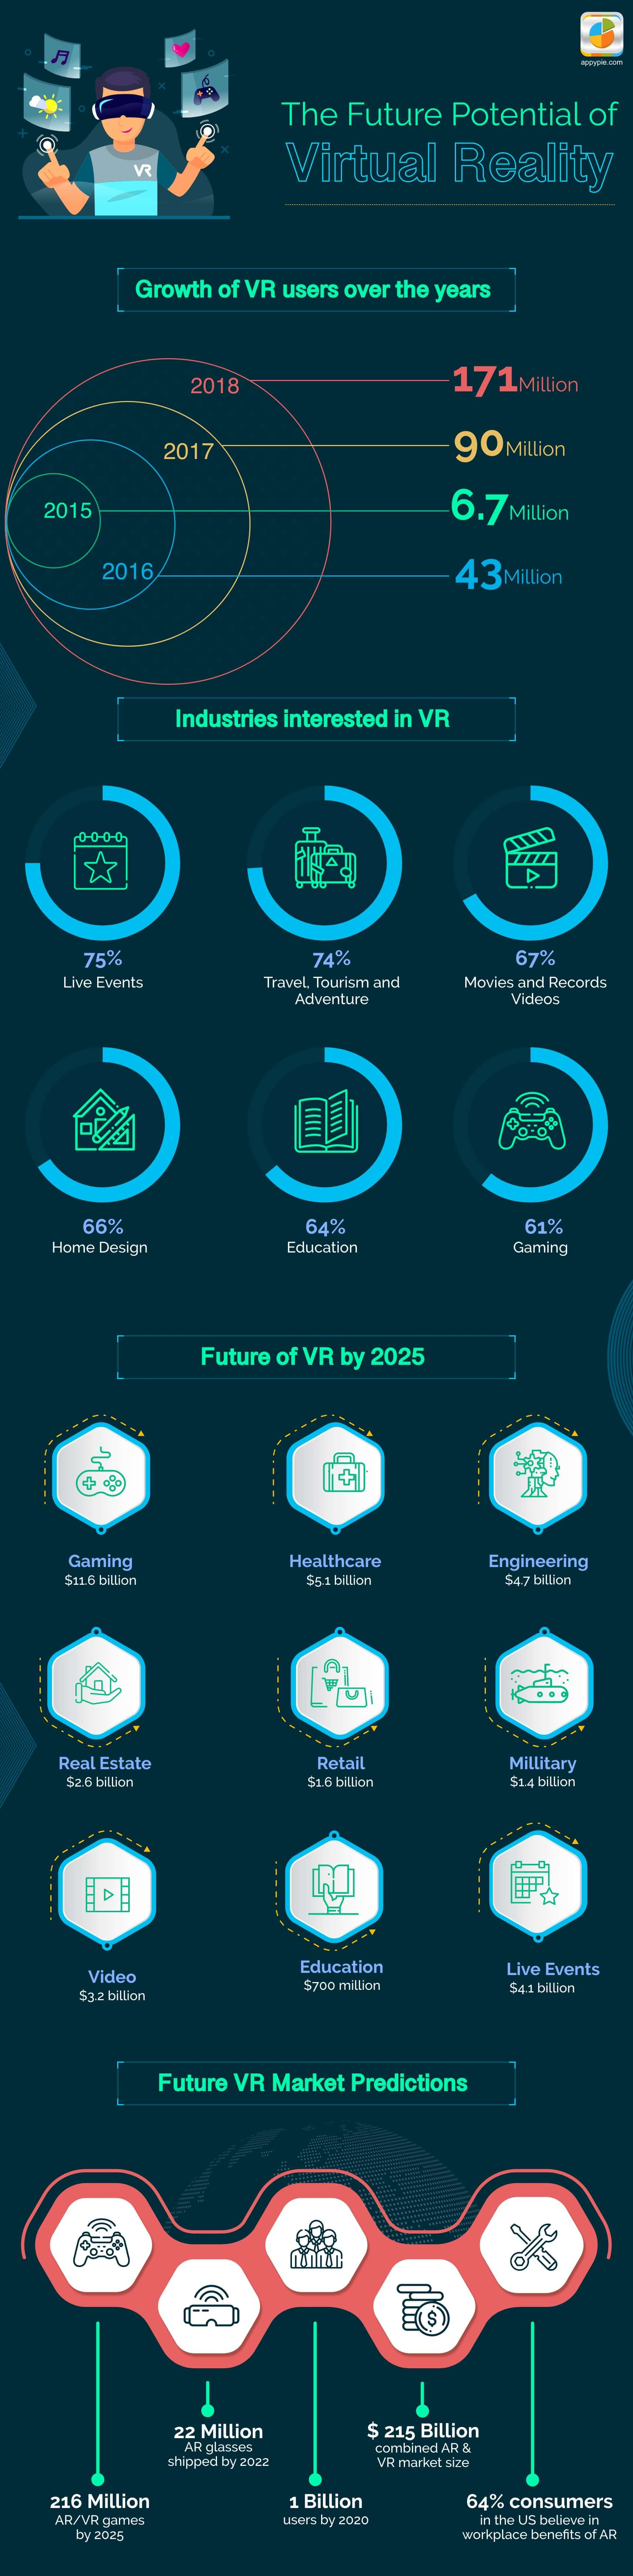 The Future Potential of Virtual Reality